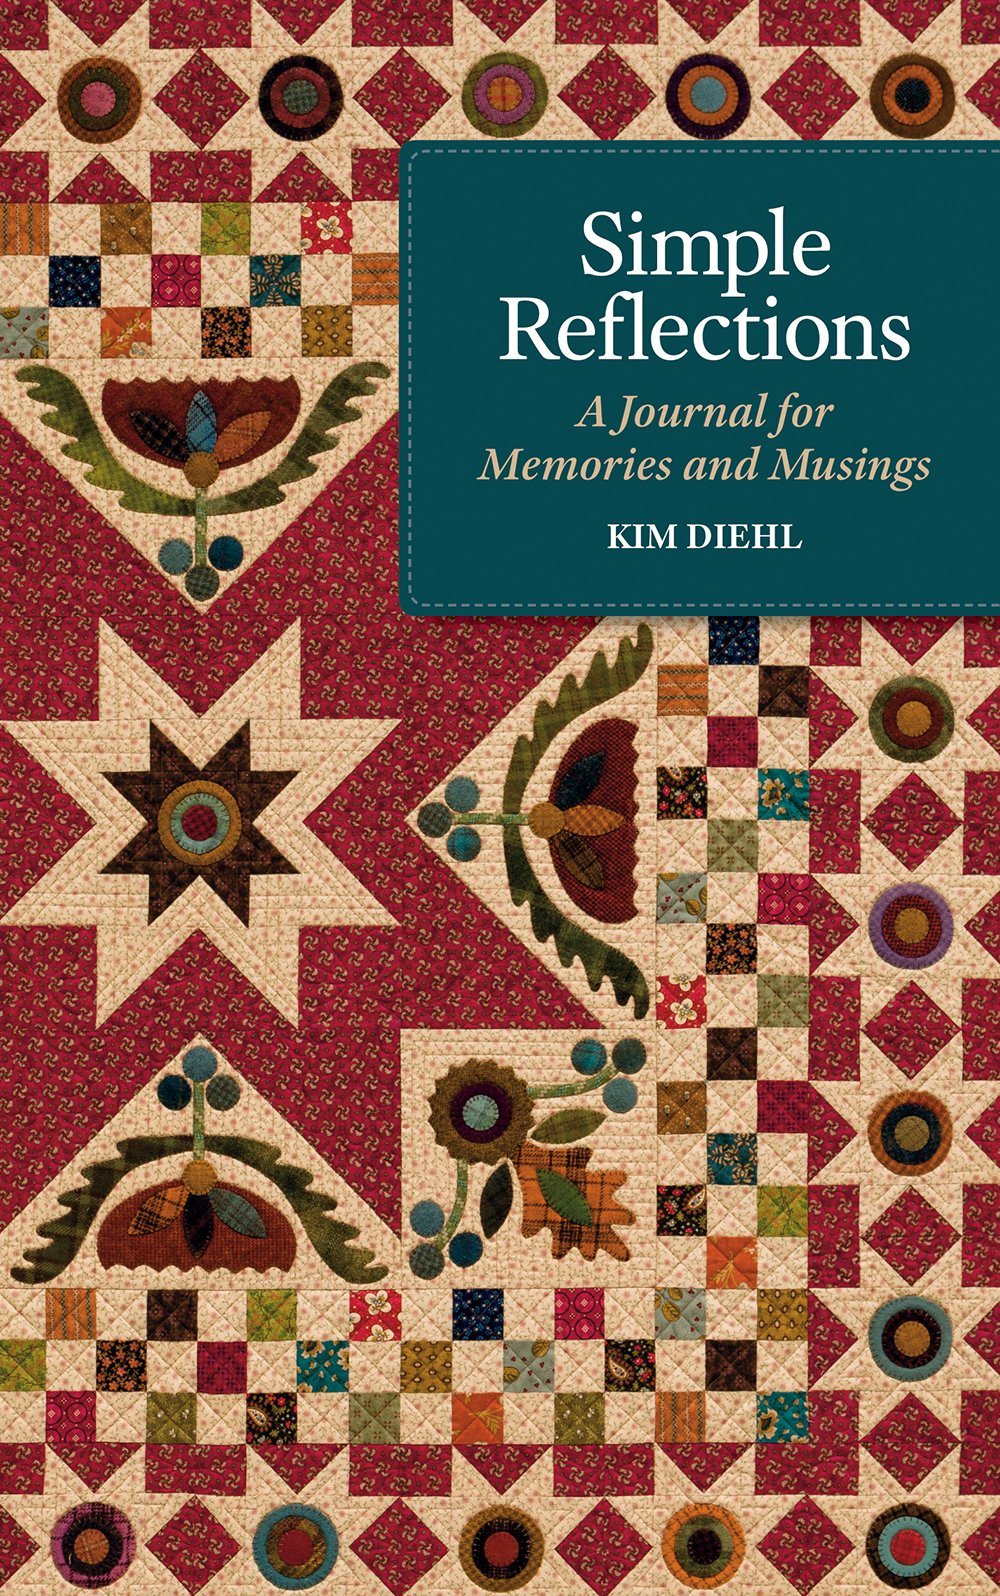 Simple Reflections: A Journal for Memories and Musings